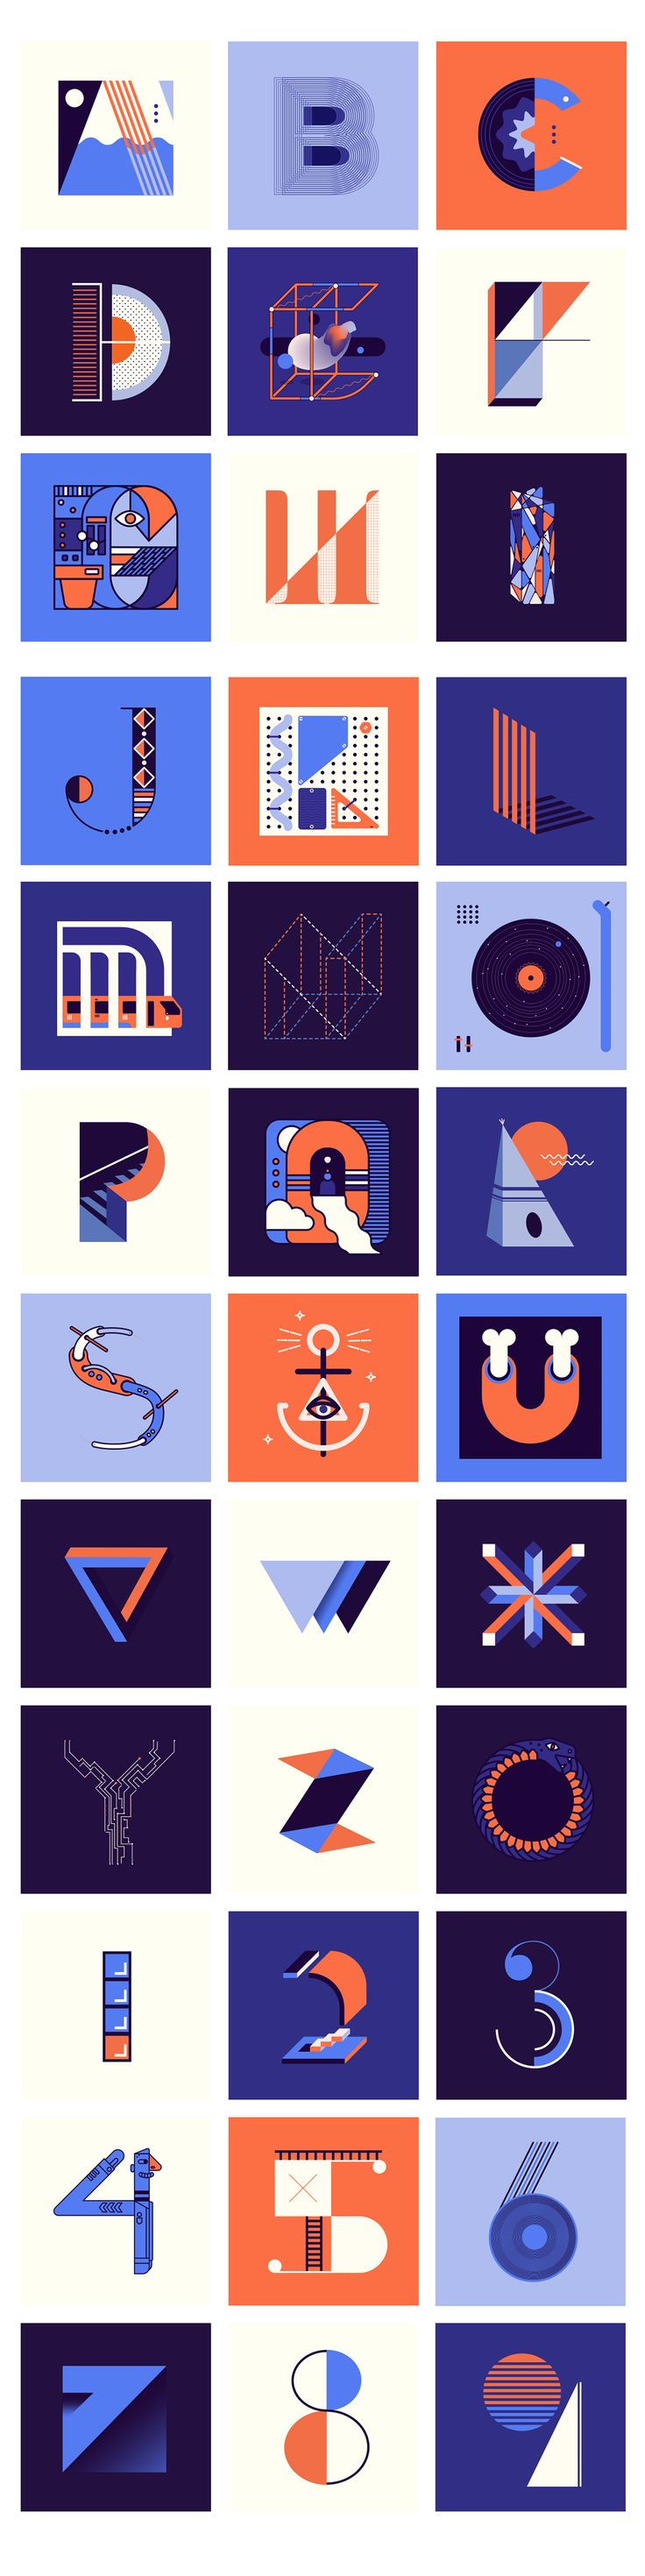 36 Days of Type is a project created by Nina Sans & Rafa Goicoechea that invites designers, illustrators and graphic artists to give ​their view on our alphabet.